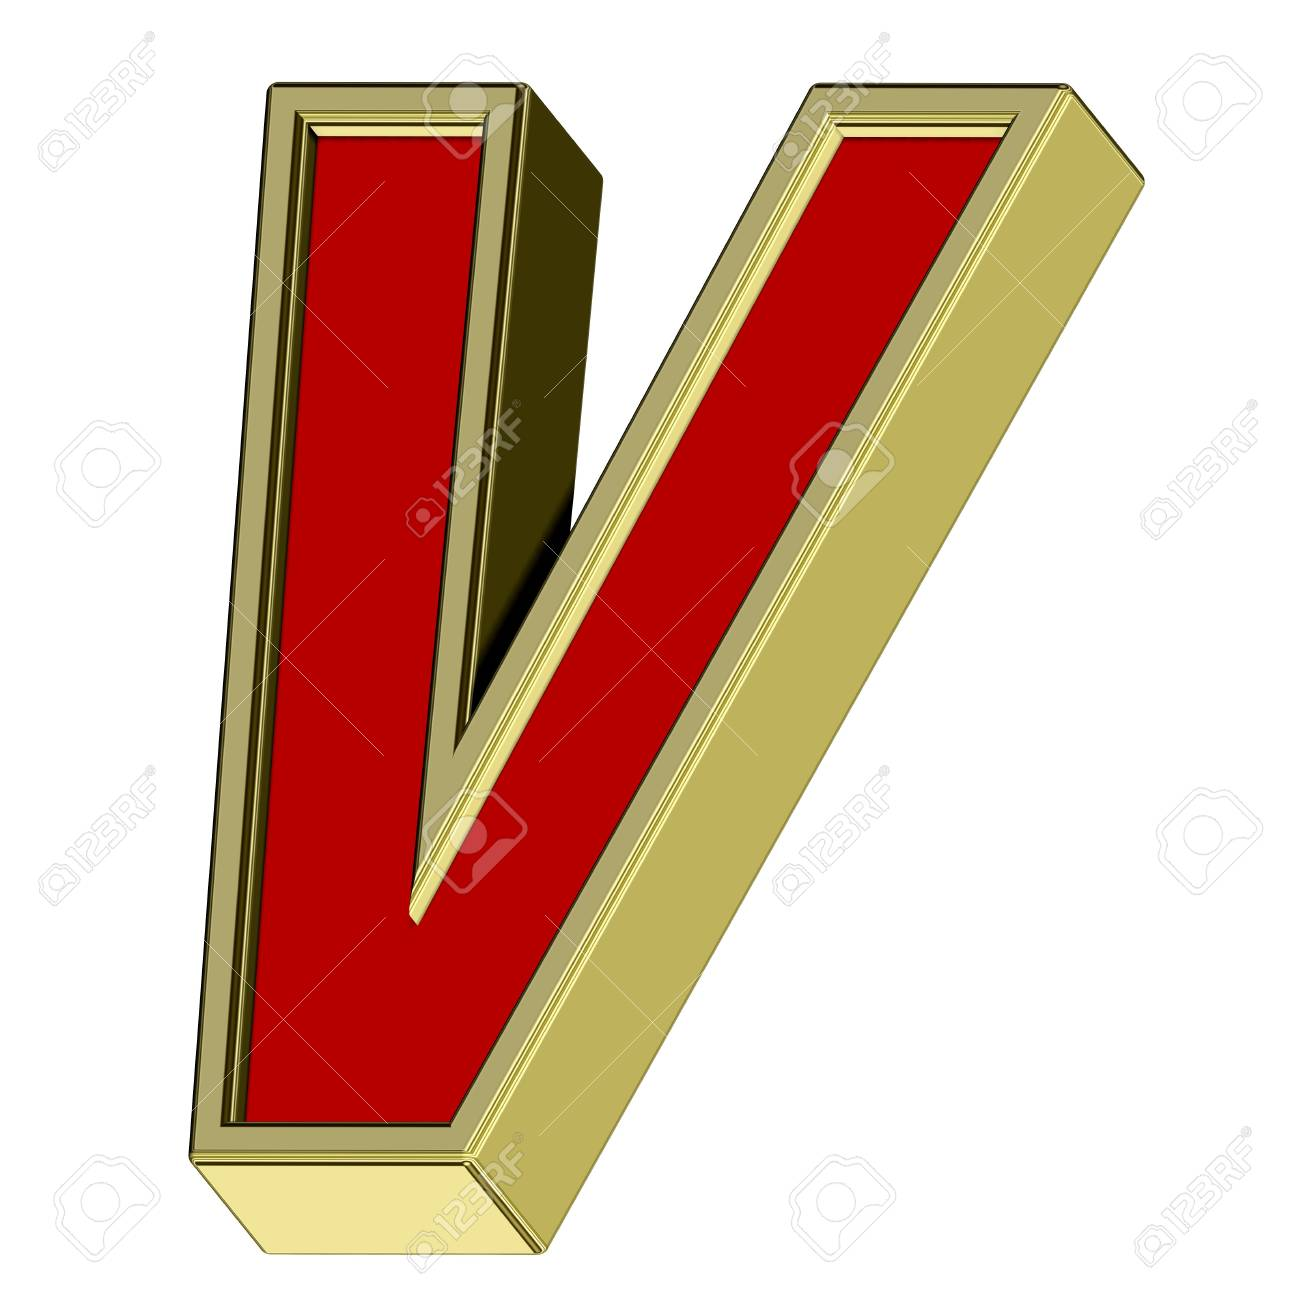 One letter from red with gold frame alphabet set, isolated on white. Computer generated 3D photo rendering. Stock Photo - 6116793